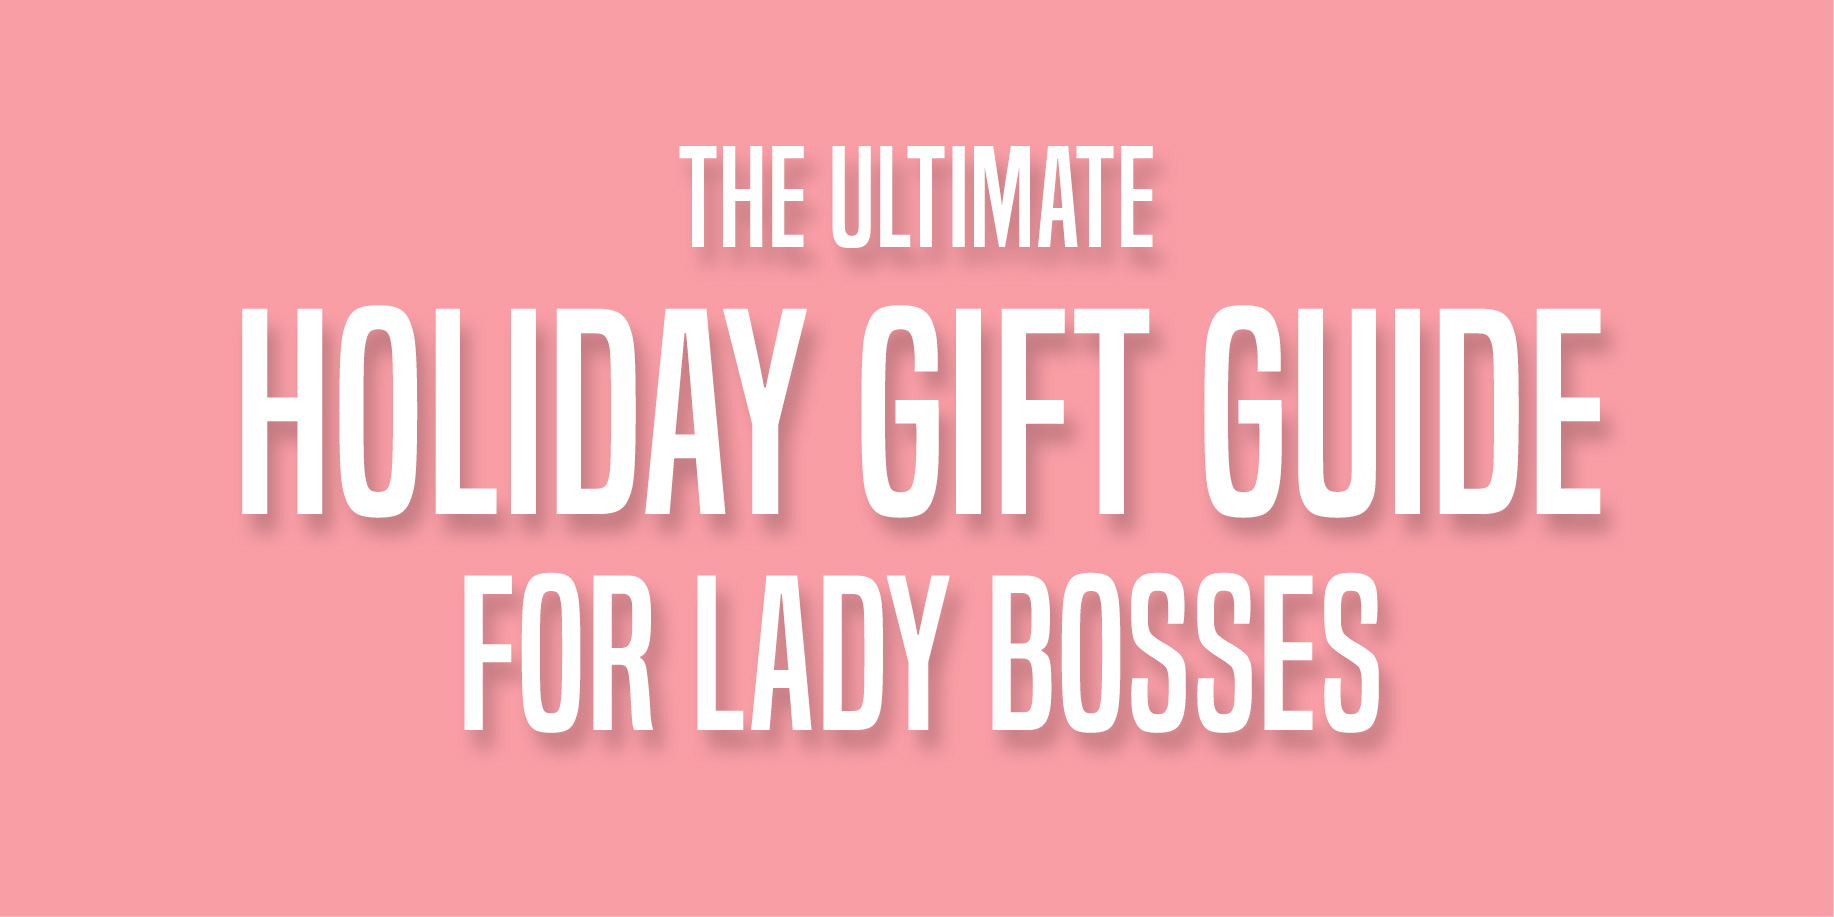 The Ultimate Holiday Gift Guide for Lady Bosses